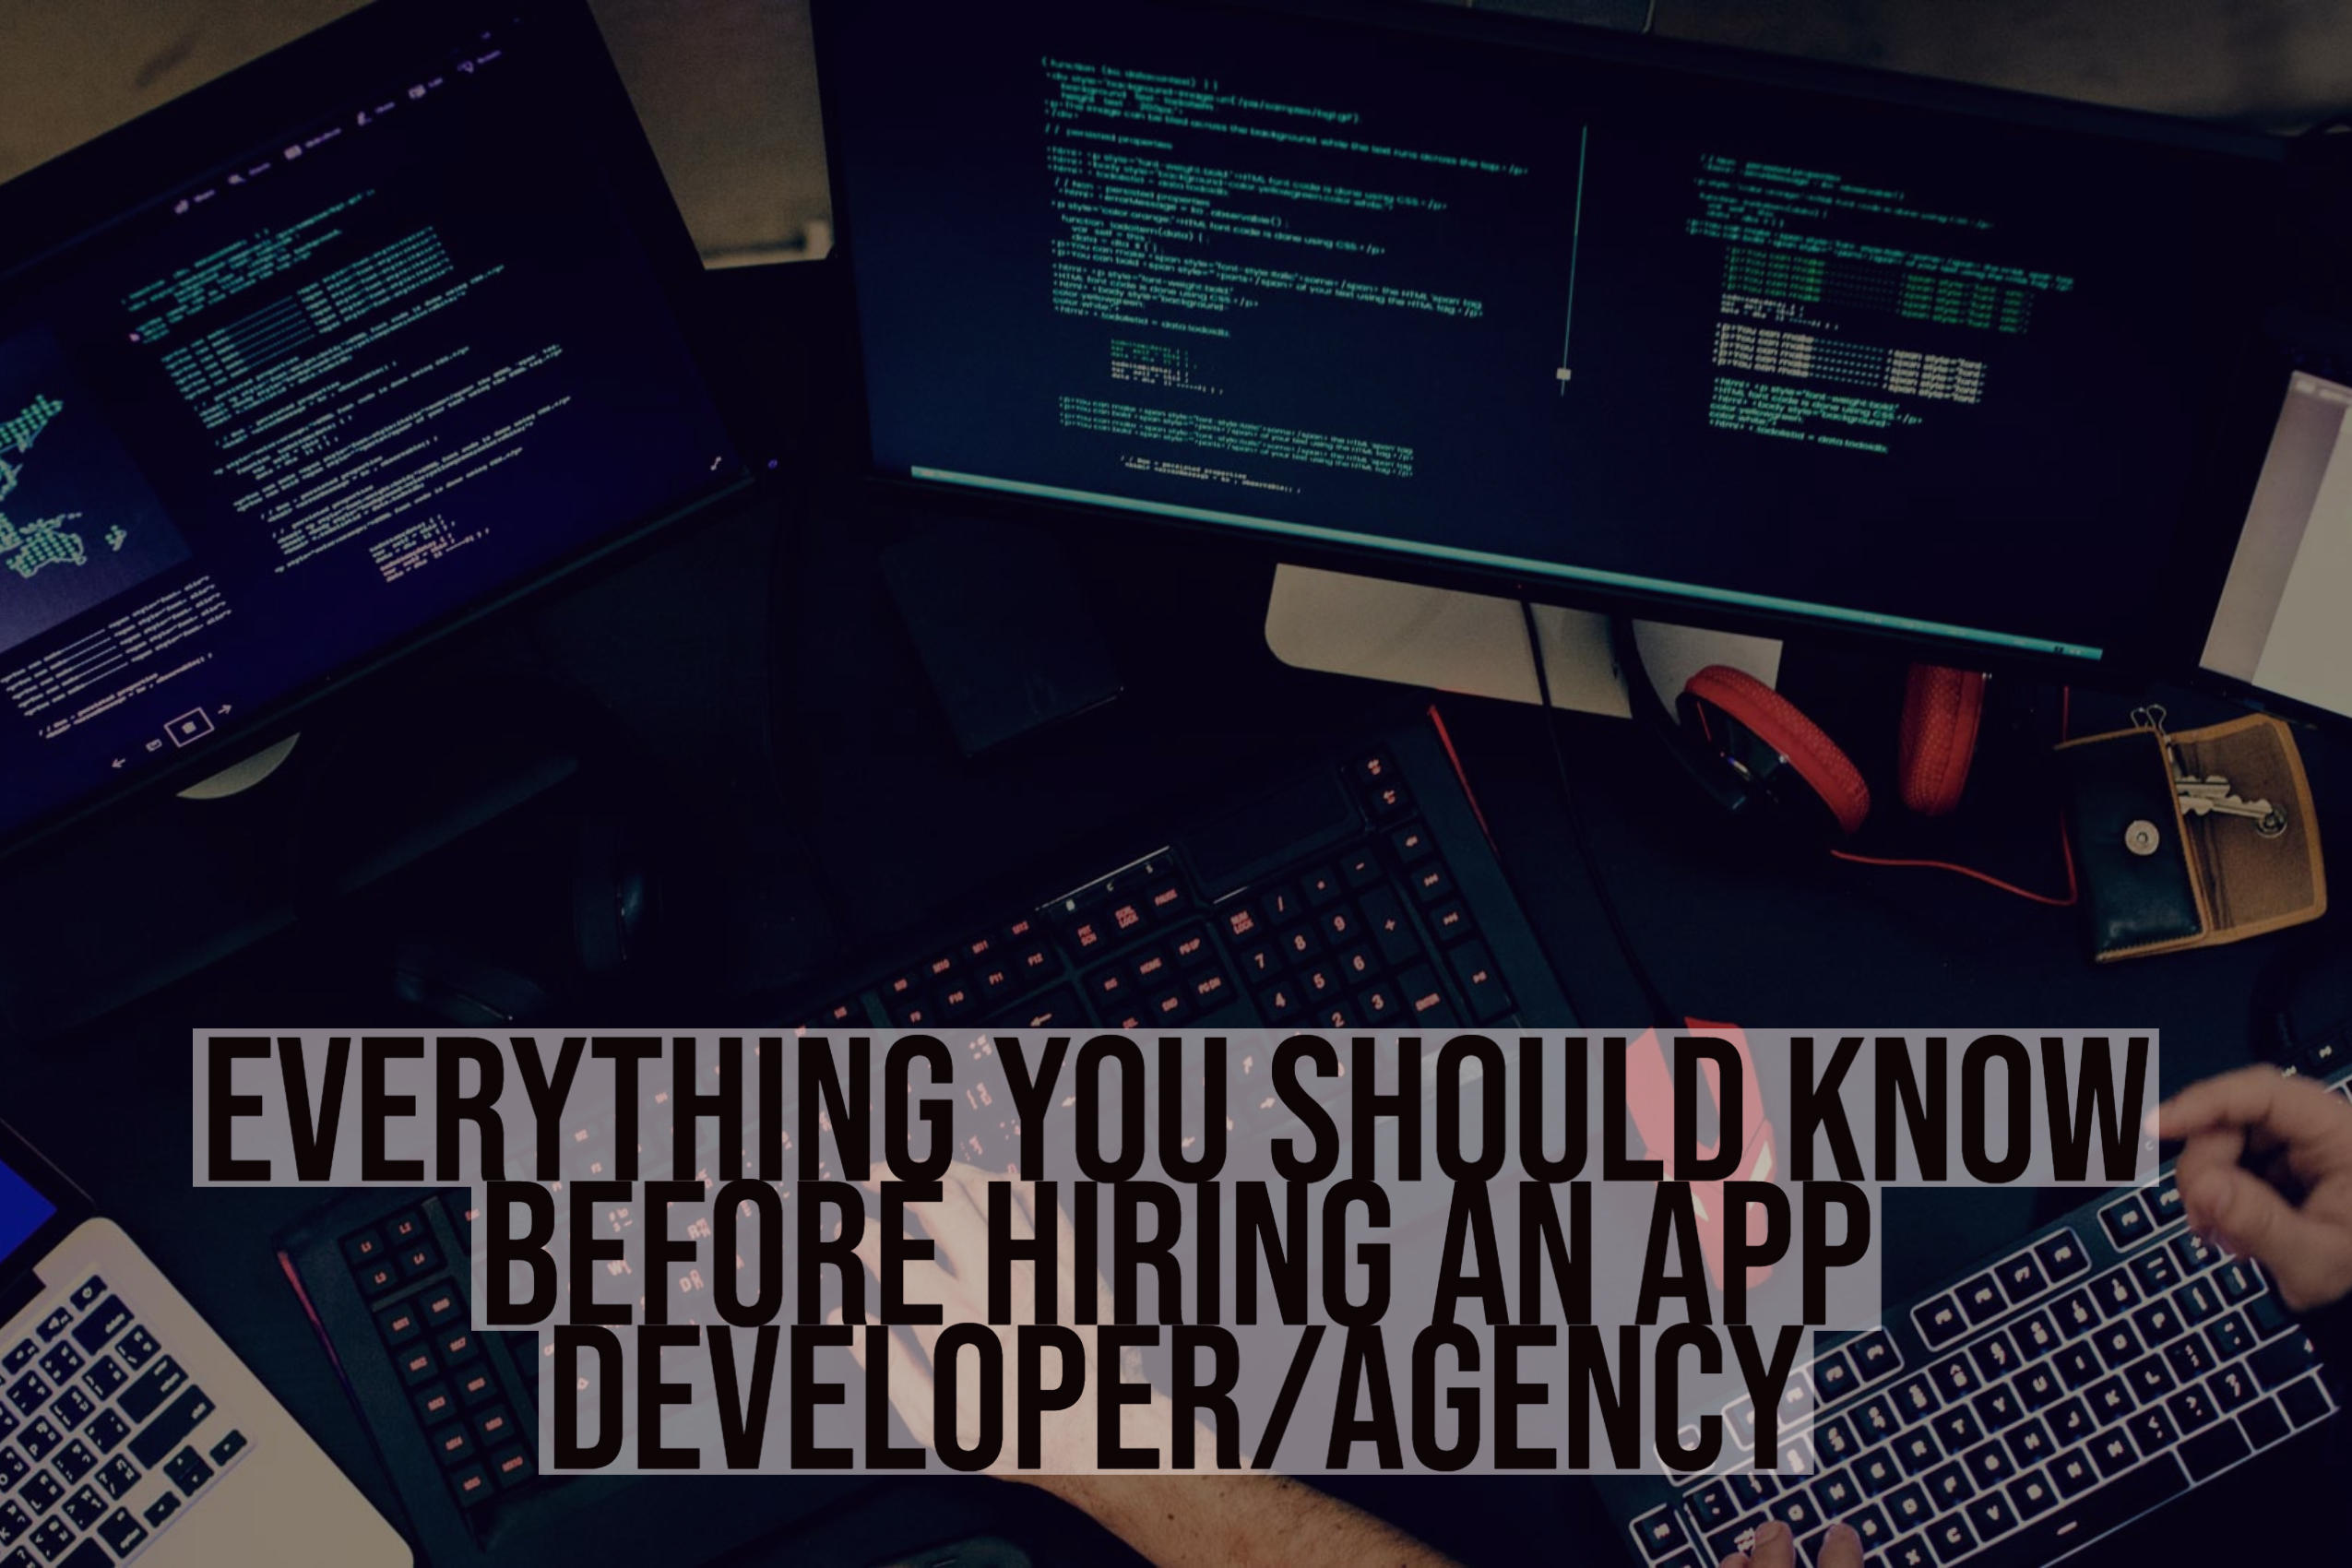 Everything you should know before hiring an app developer - agency